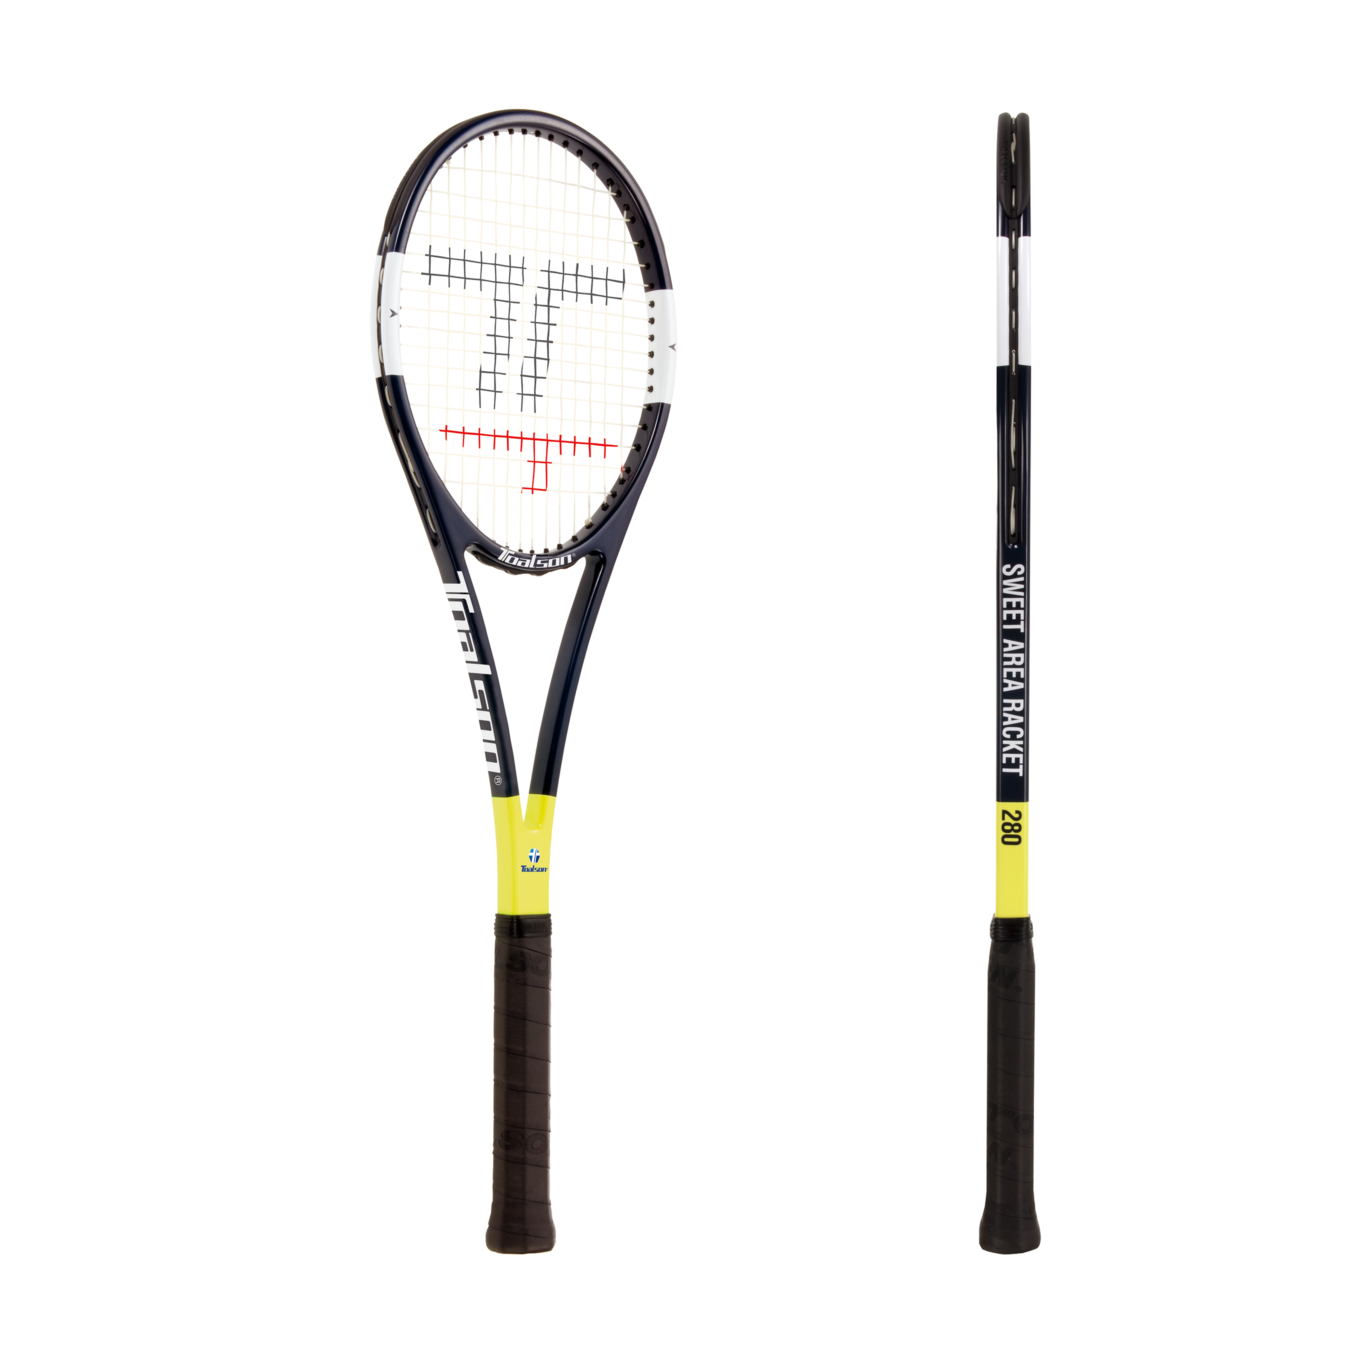 SWEET AREA RACKET 280【1DR92800】